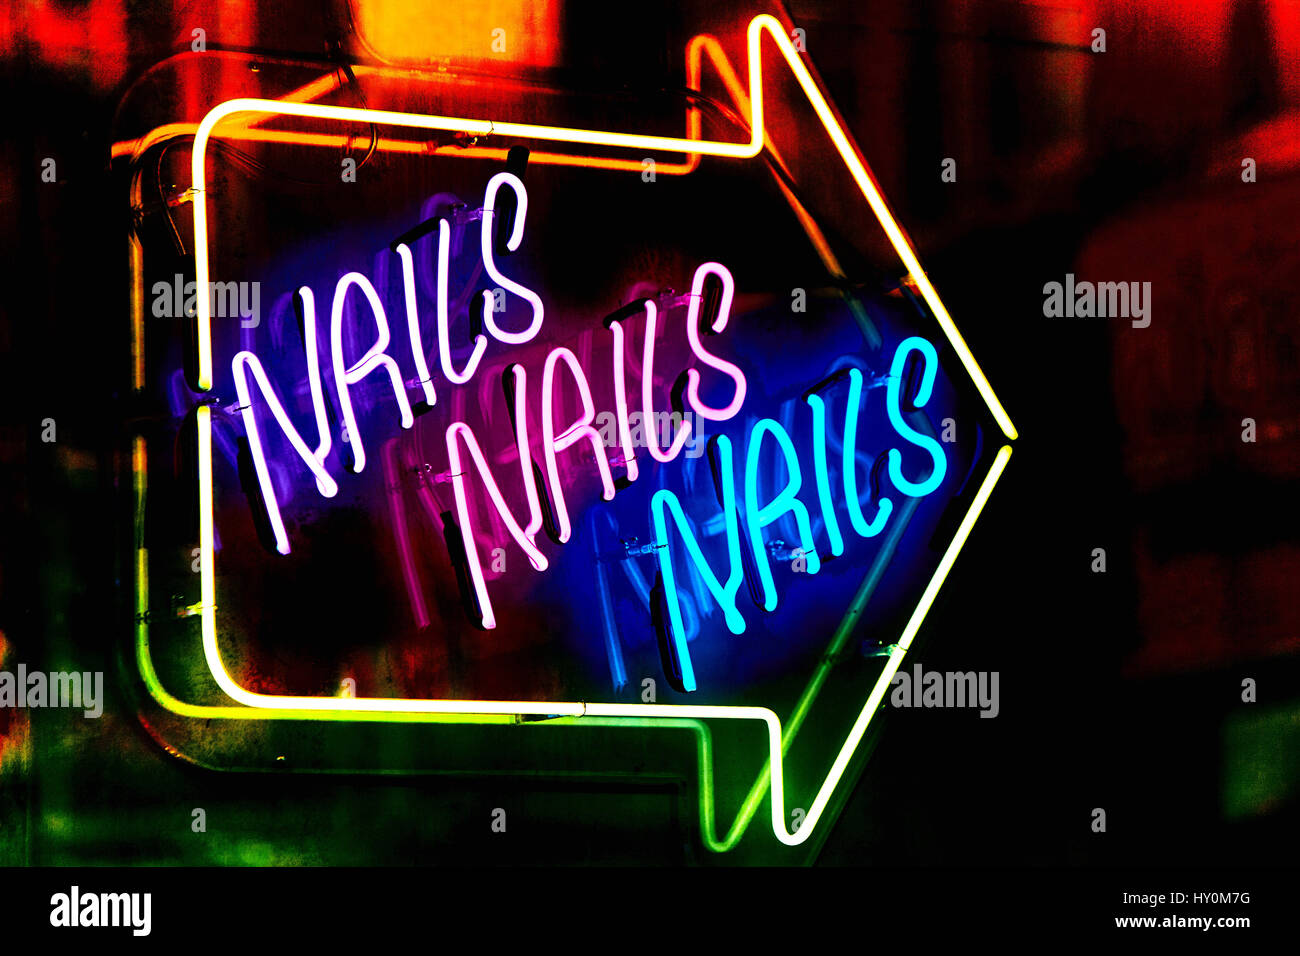 Neon Sign For A Nail Bar In London